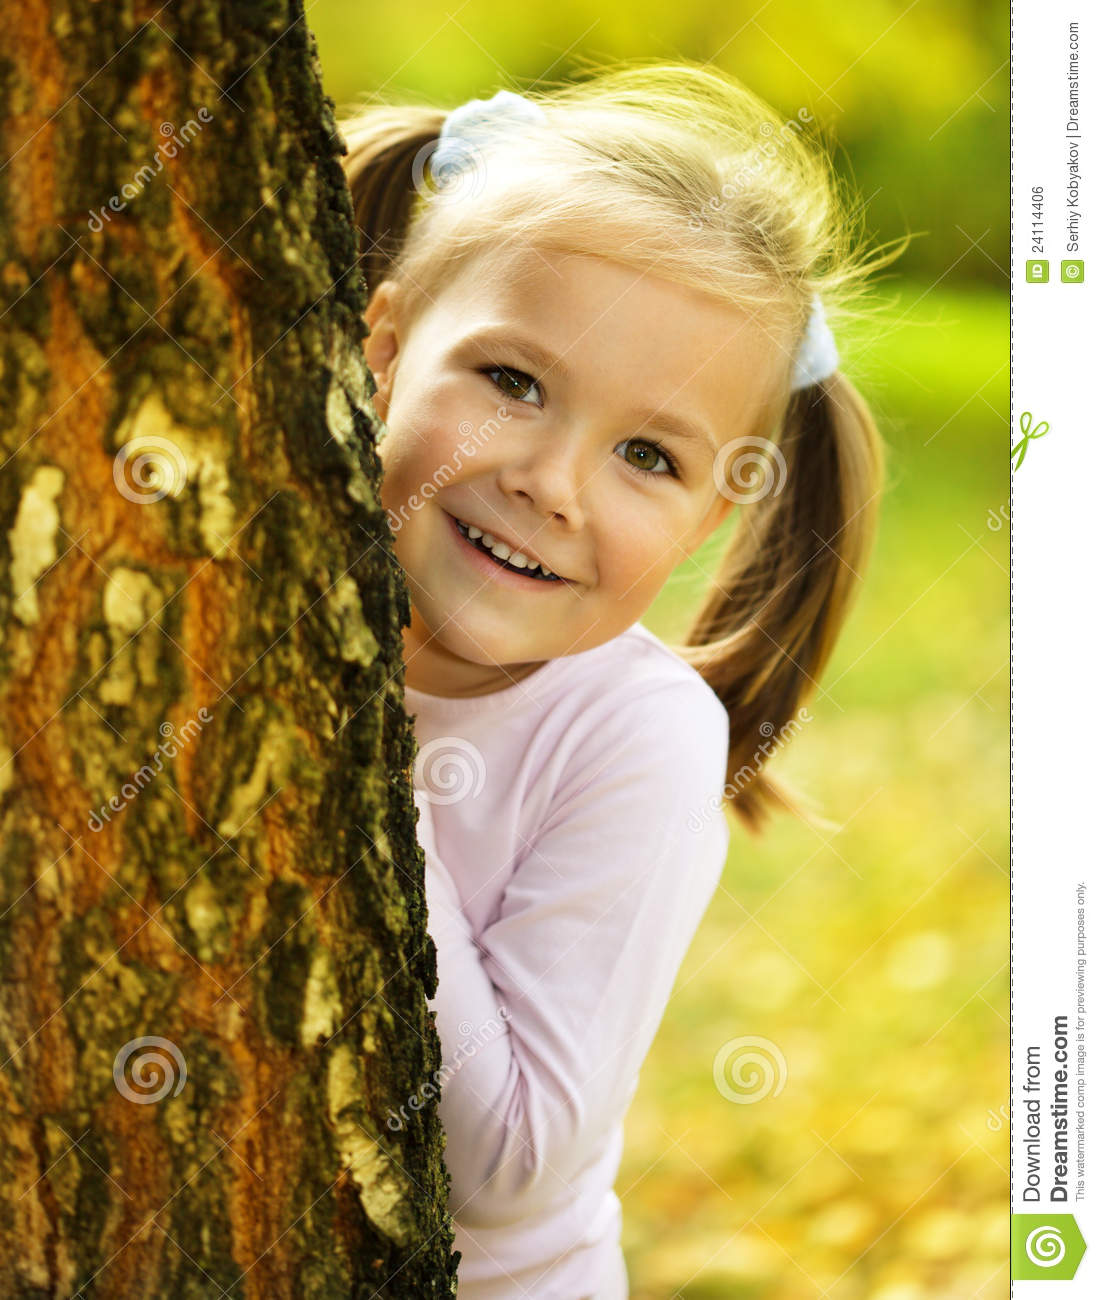 ... Is Playing Hide And Seek Royalty Free Stock Image - Image: 24114406